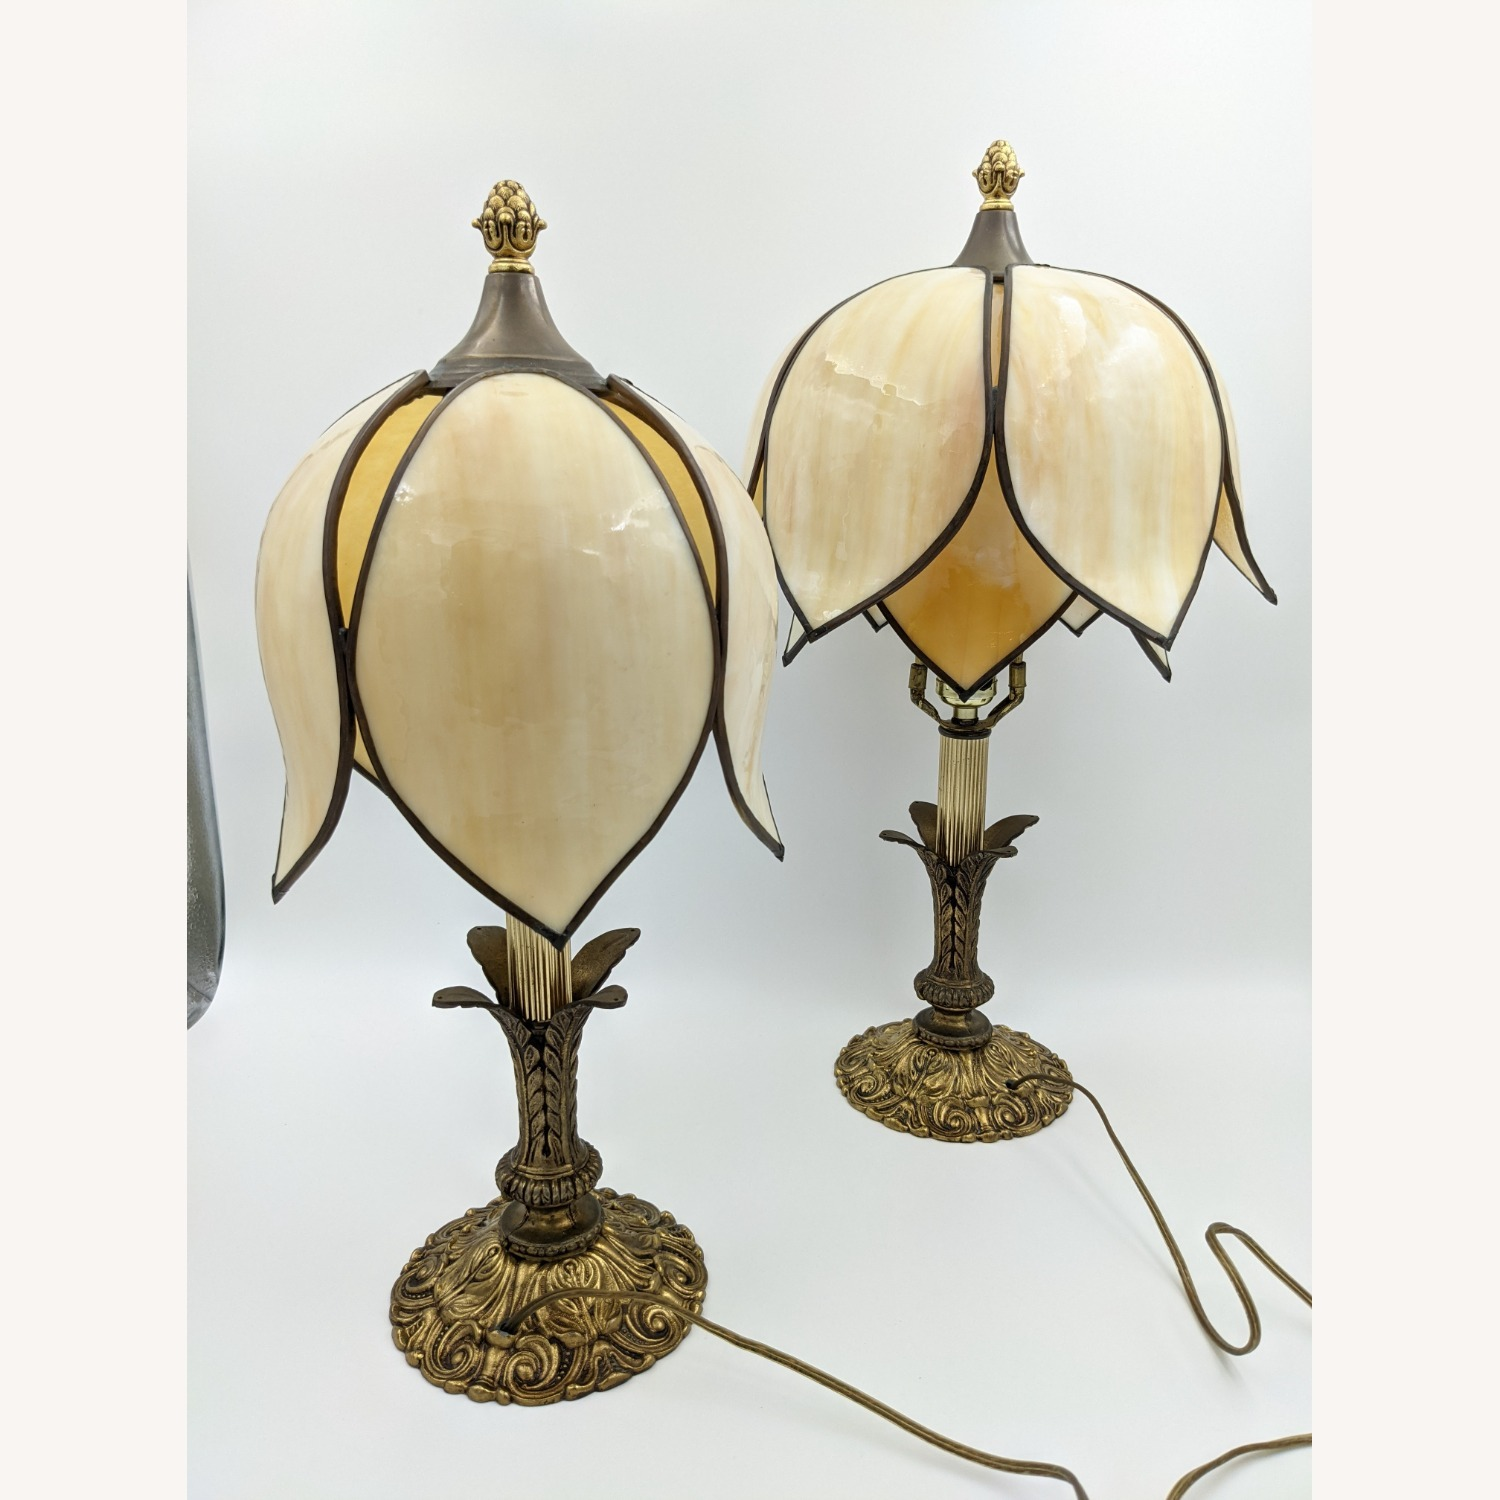 Set of 1920s Tulip Table Lamps - Slag Glass - image-1